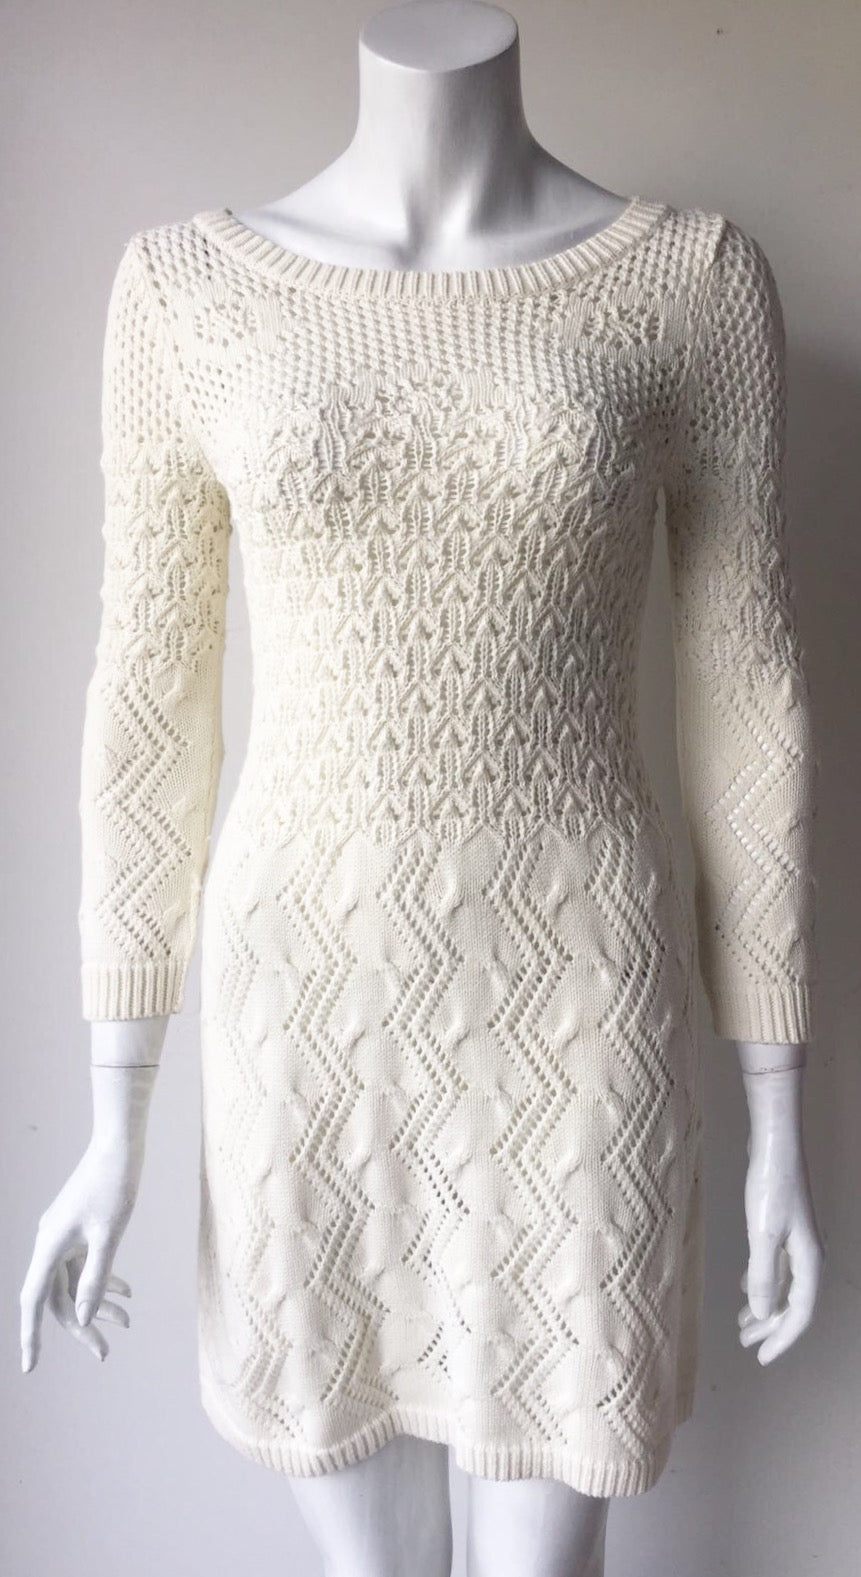 Topshop Cream Long Sleeve Knit Dress Size 4